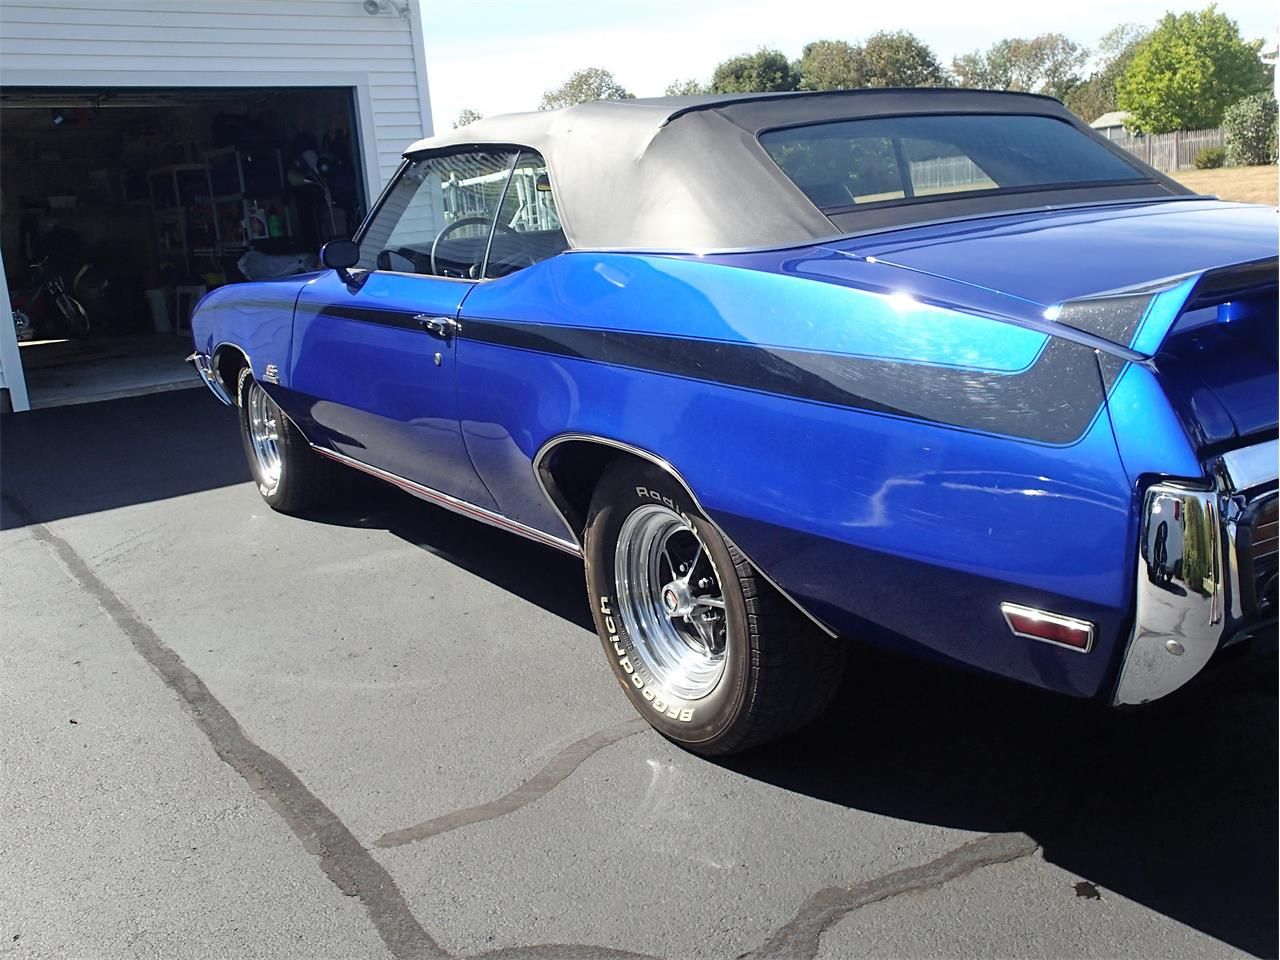 Large Picture of Classic 1972 Buick GSX located in Gorham Maine Offered by a Private Seller - JGI5